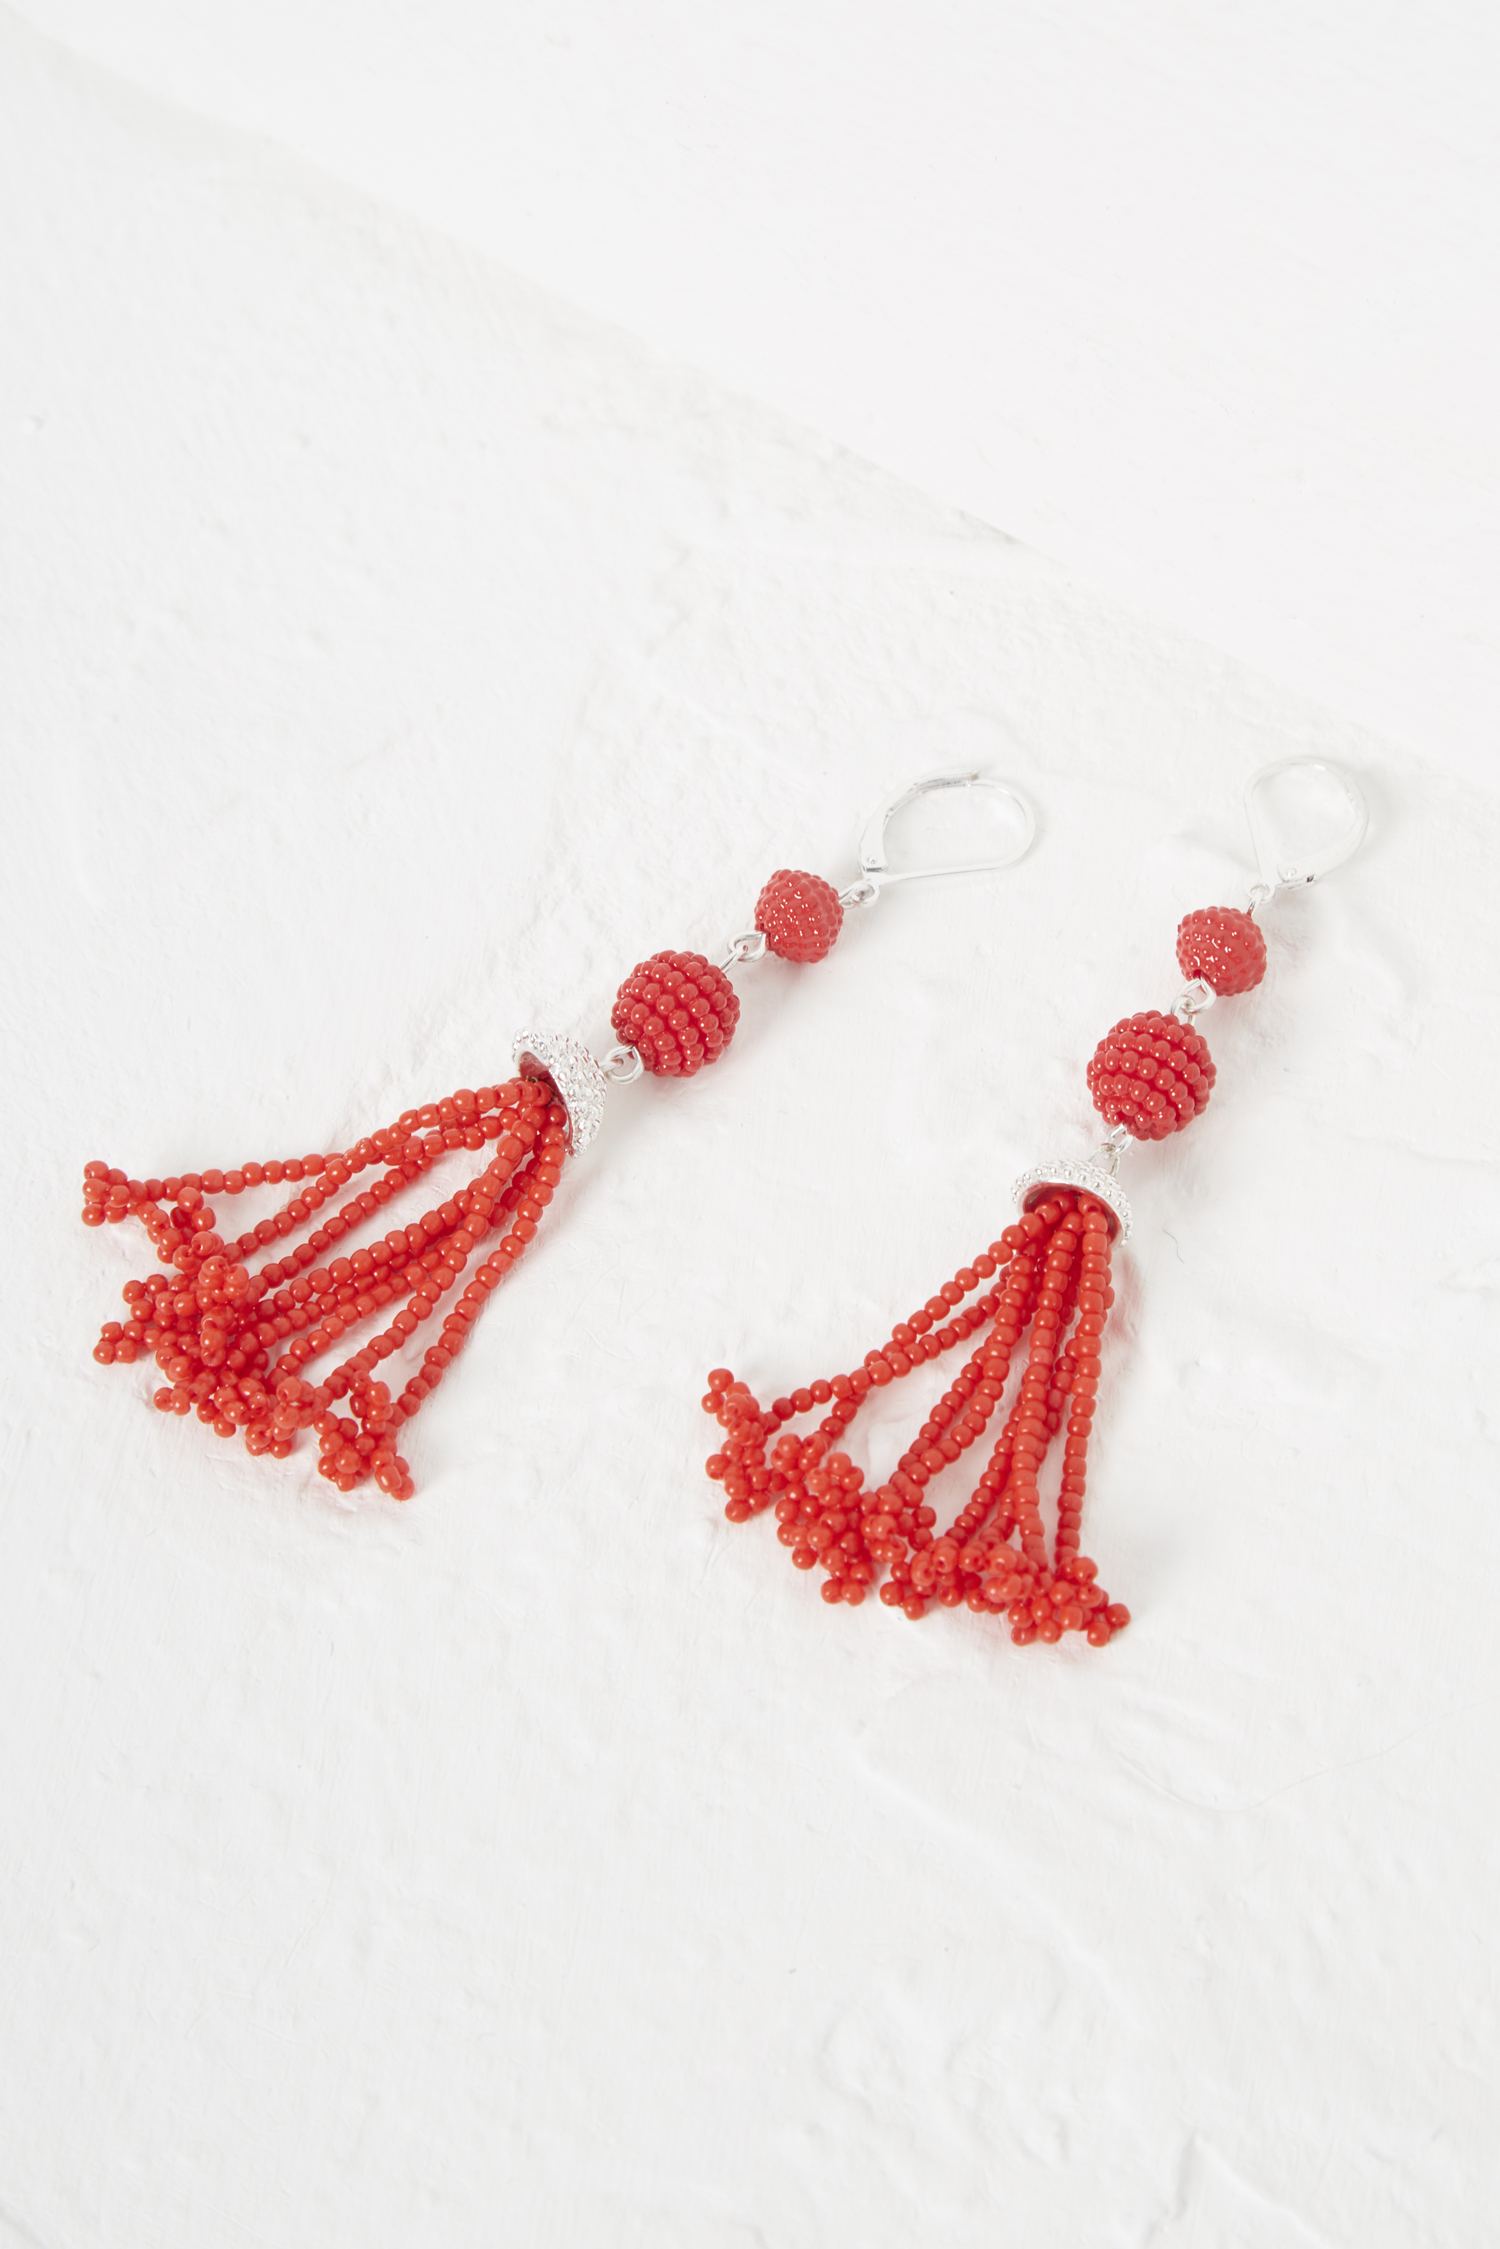 Geo Resin Bead Earrings Valentines Day Highlights French